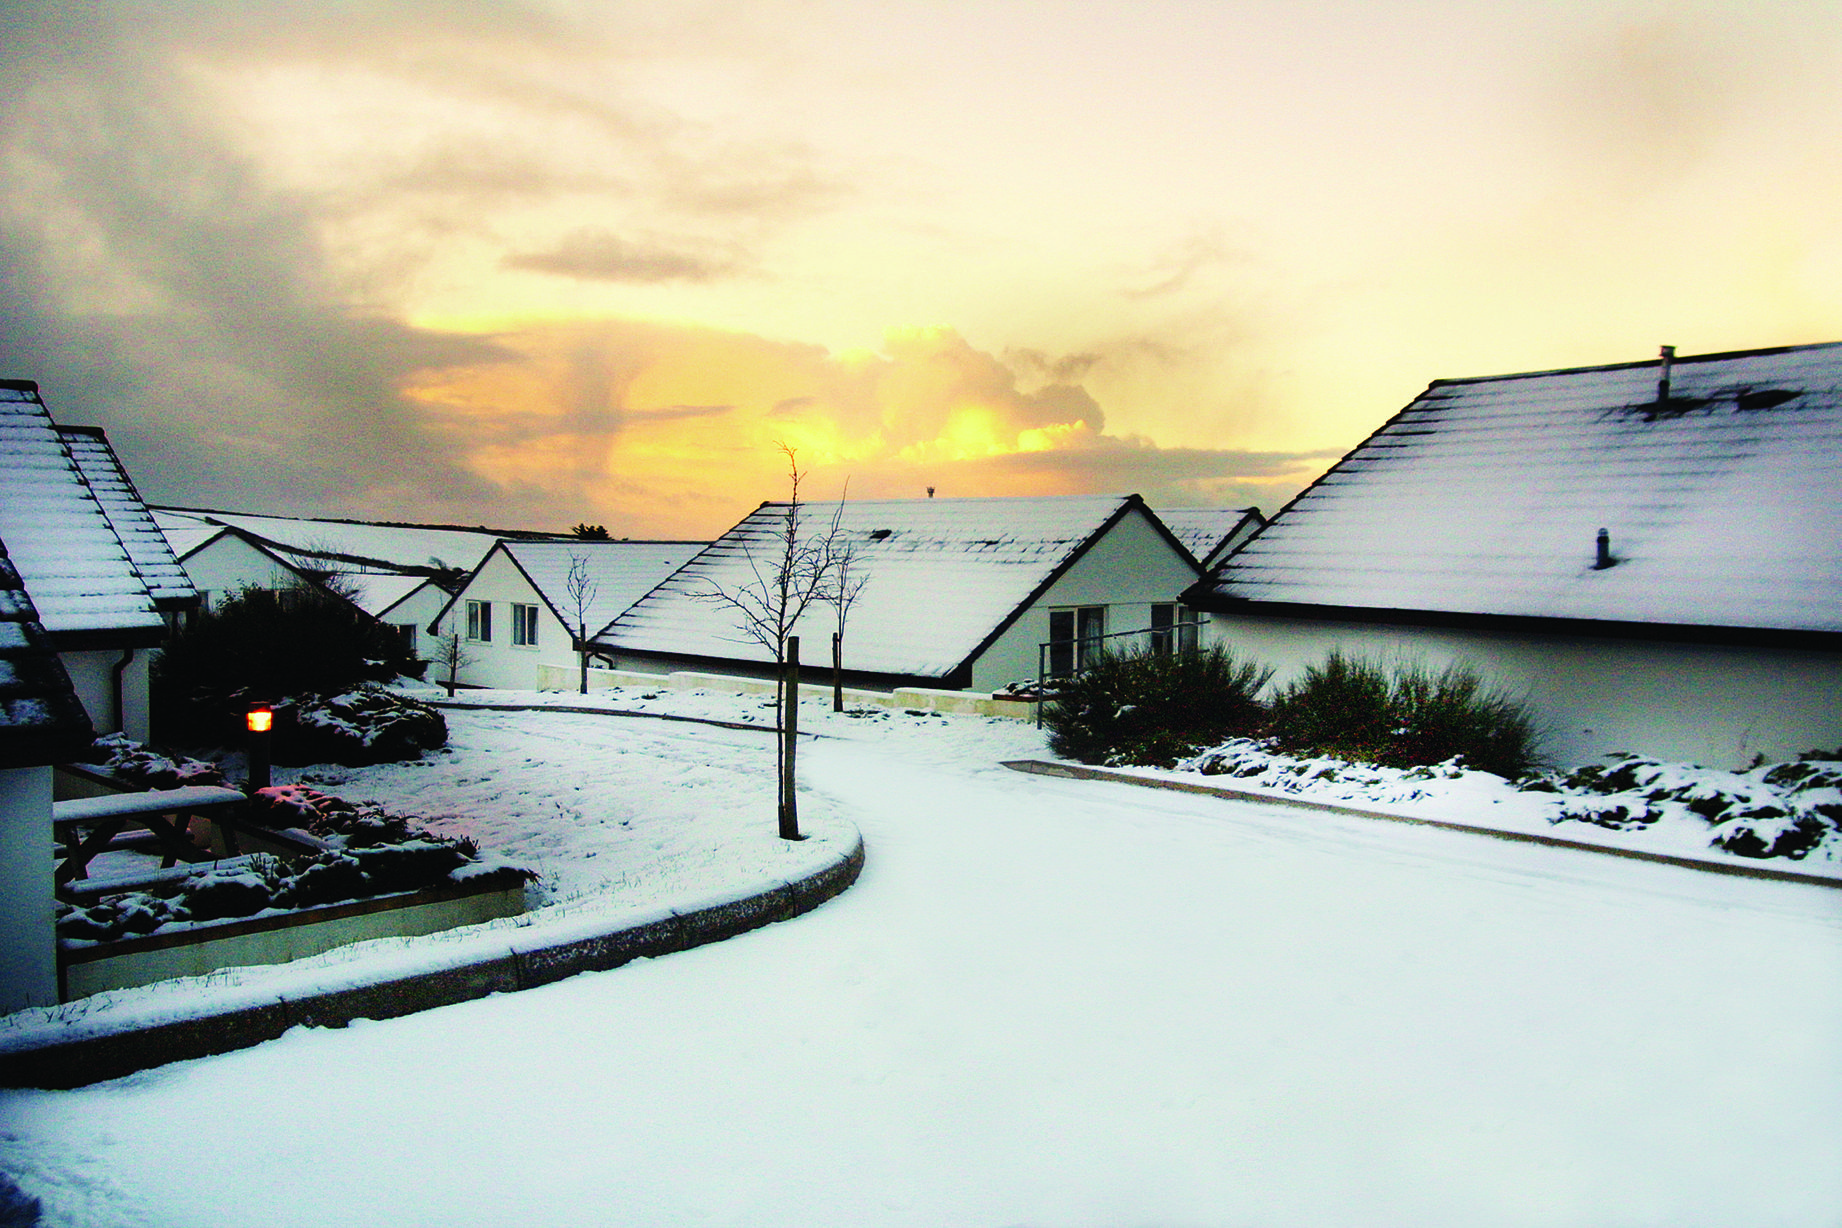 Woolacombe Bay Holiday Parks In The Snow Holiday Destinations Woolacombe Bay Holiday Park